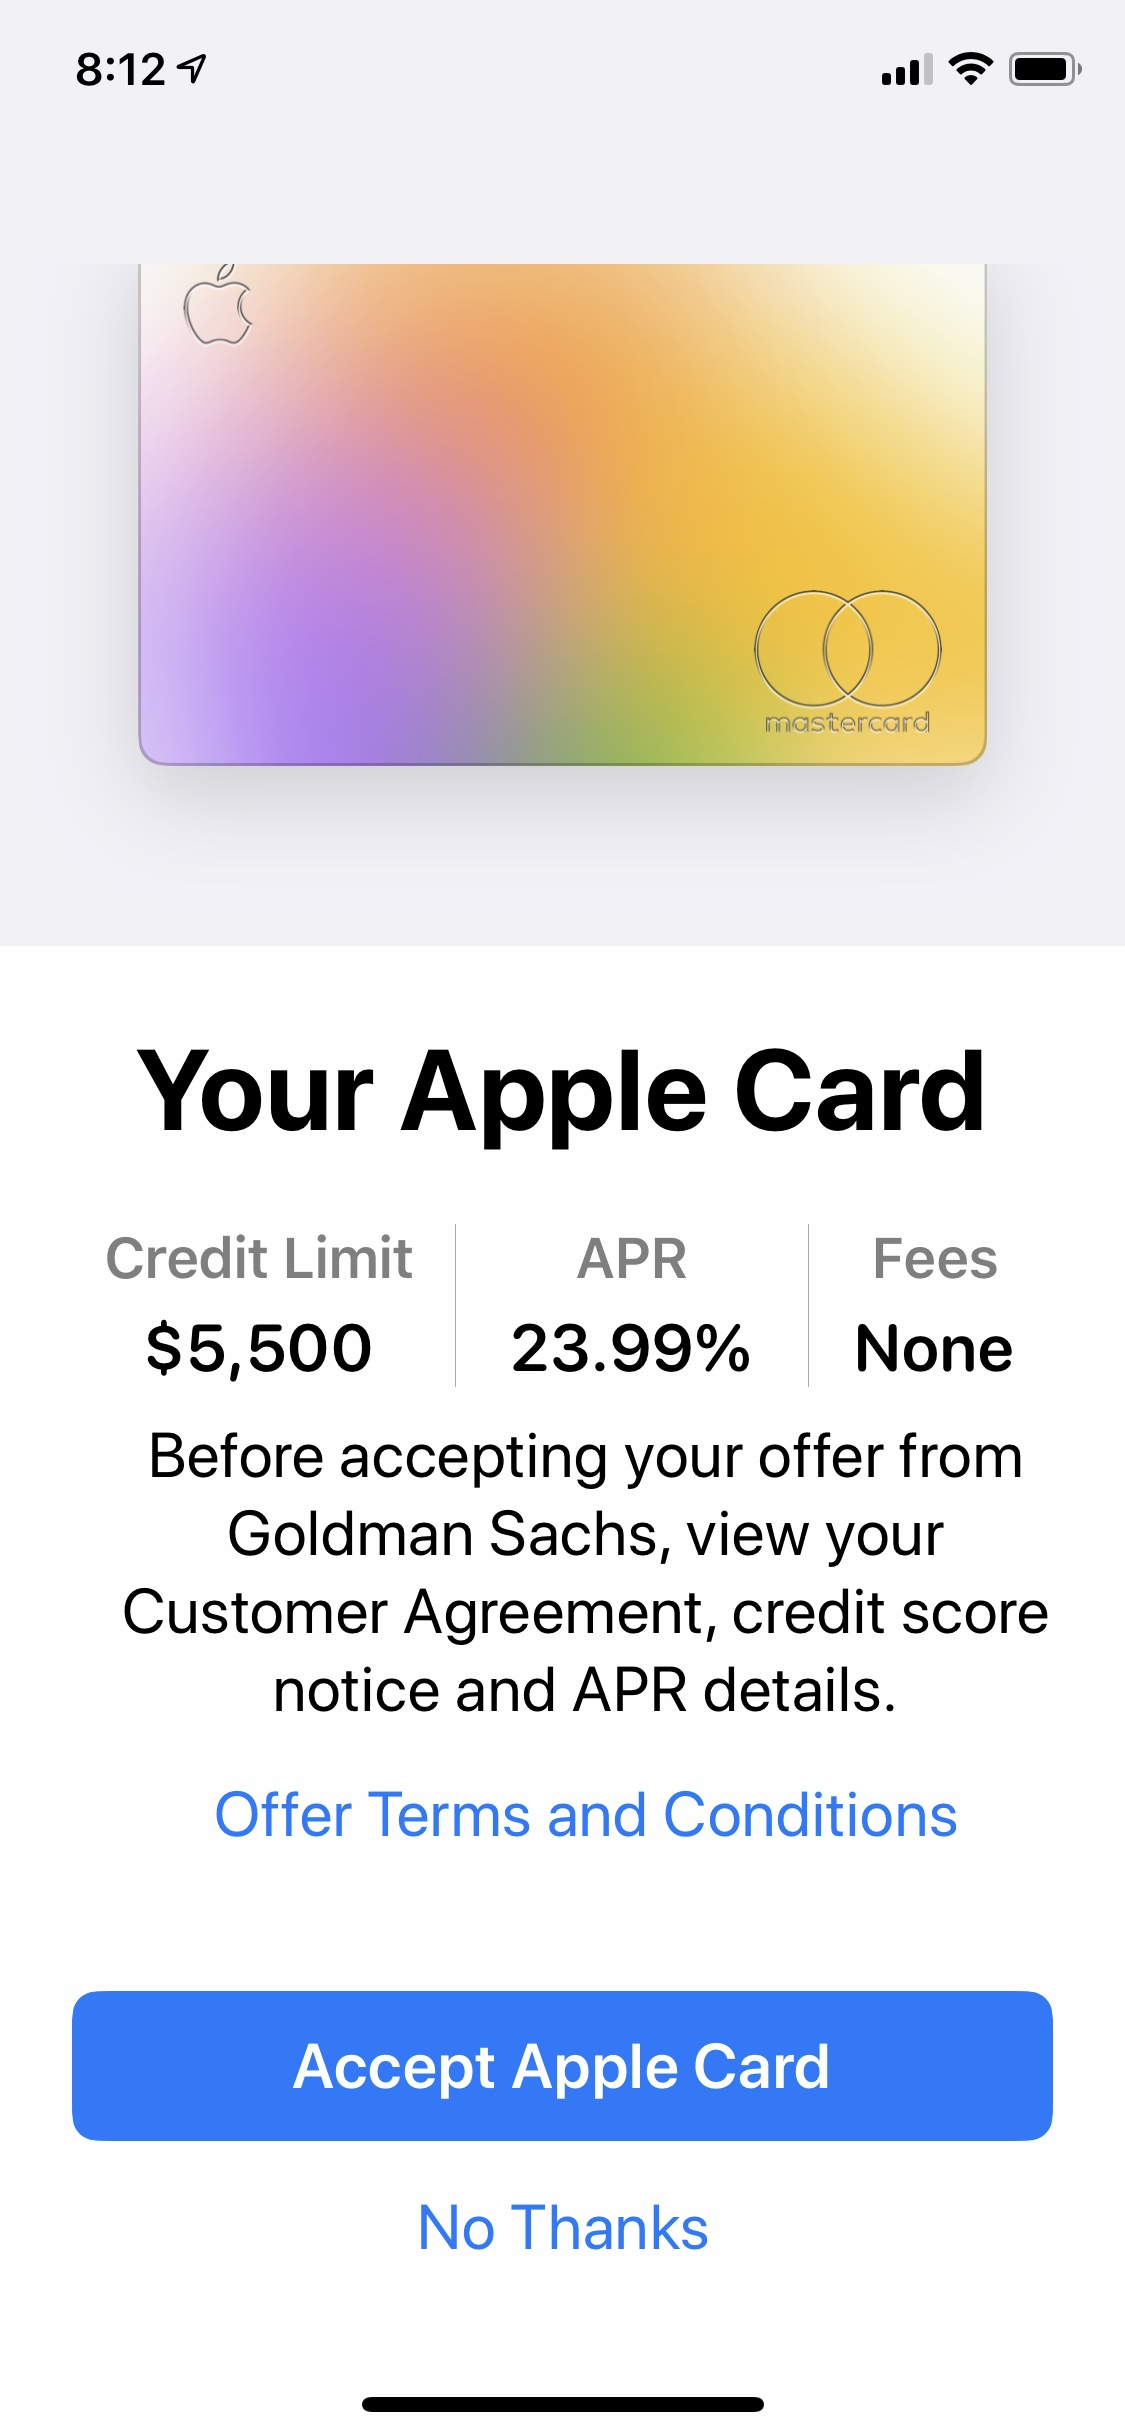 Apple Card Approval $112 - Page 12 - myFICO® Forums - 12